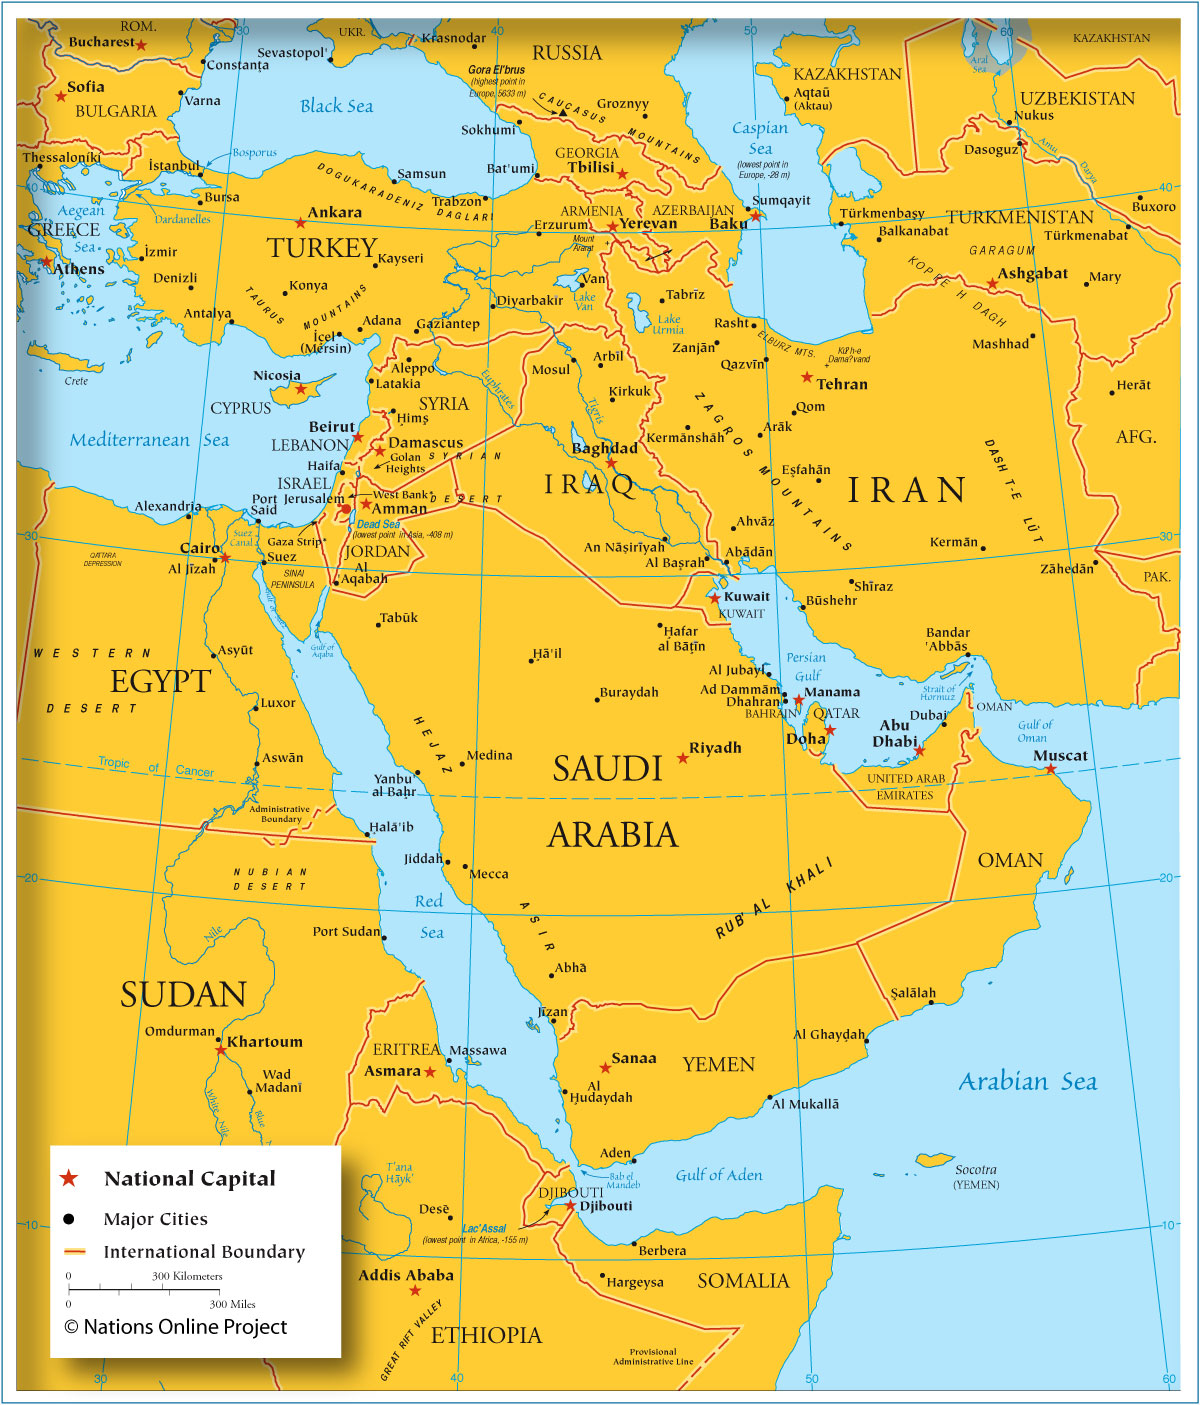 Map of Countries in Western Asia and the Middle East - Nations ... Map Of Western Asia on northern cyprus, blank map of asia, map of middle east, map of southwestern asia, map of eastern europe, map of united kingdom, map of indonesia, map of europe with cities, map of uzbekistan, east asia, map of northwestern asia, map of southeast asia only, southeast asia, western europe, map of east asia, map of united states, south caucasus, north asia, horn of africa, map of ukraine, map of syria, northeast asia, south asia, map of mediterranean basin, map of europe and asia, map of baghdad, map of africa, yemen arab republic, map of turkey, near east, central asia, indian subcontinent, map of near east, arab world,